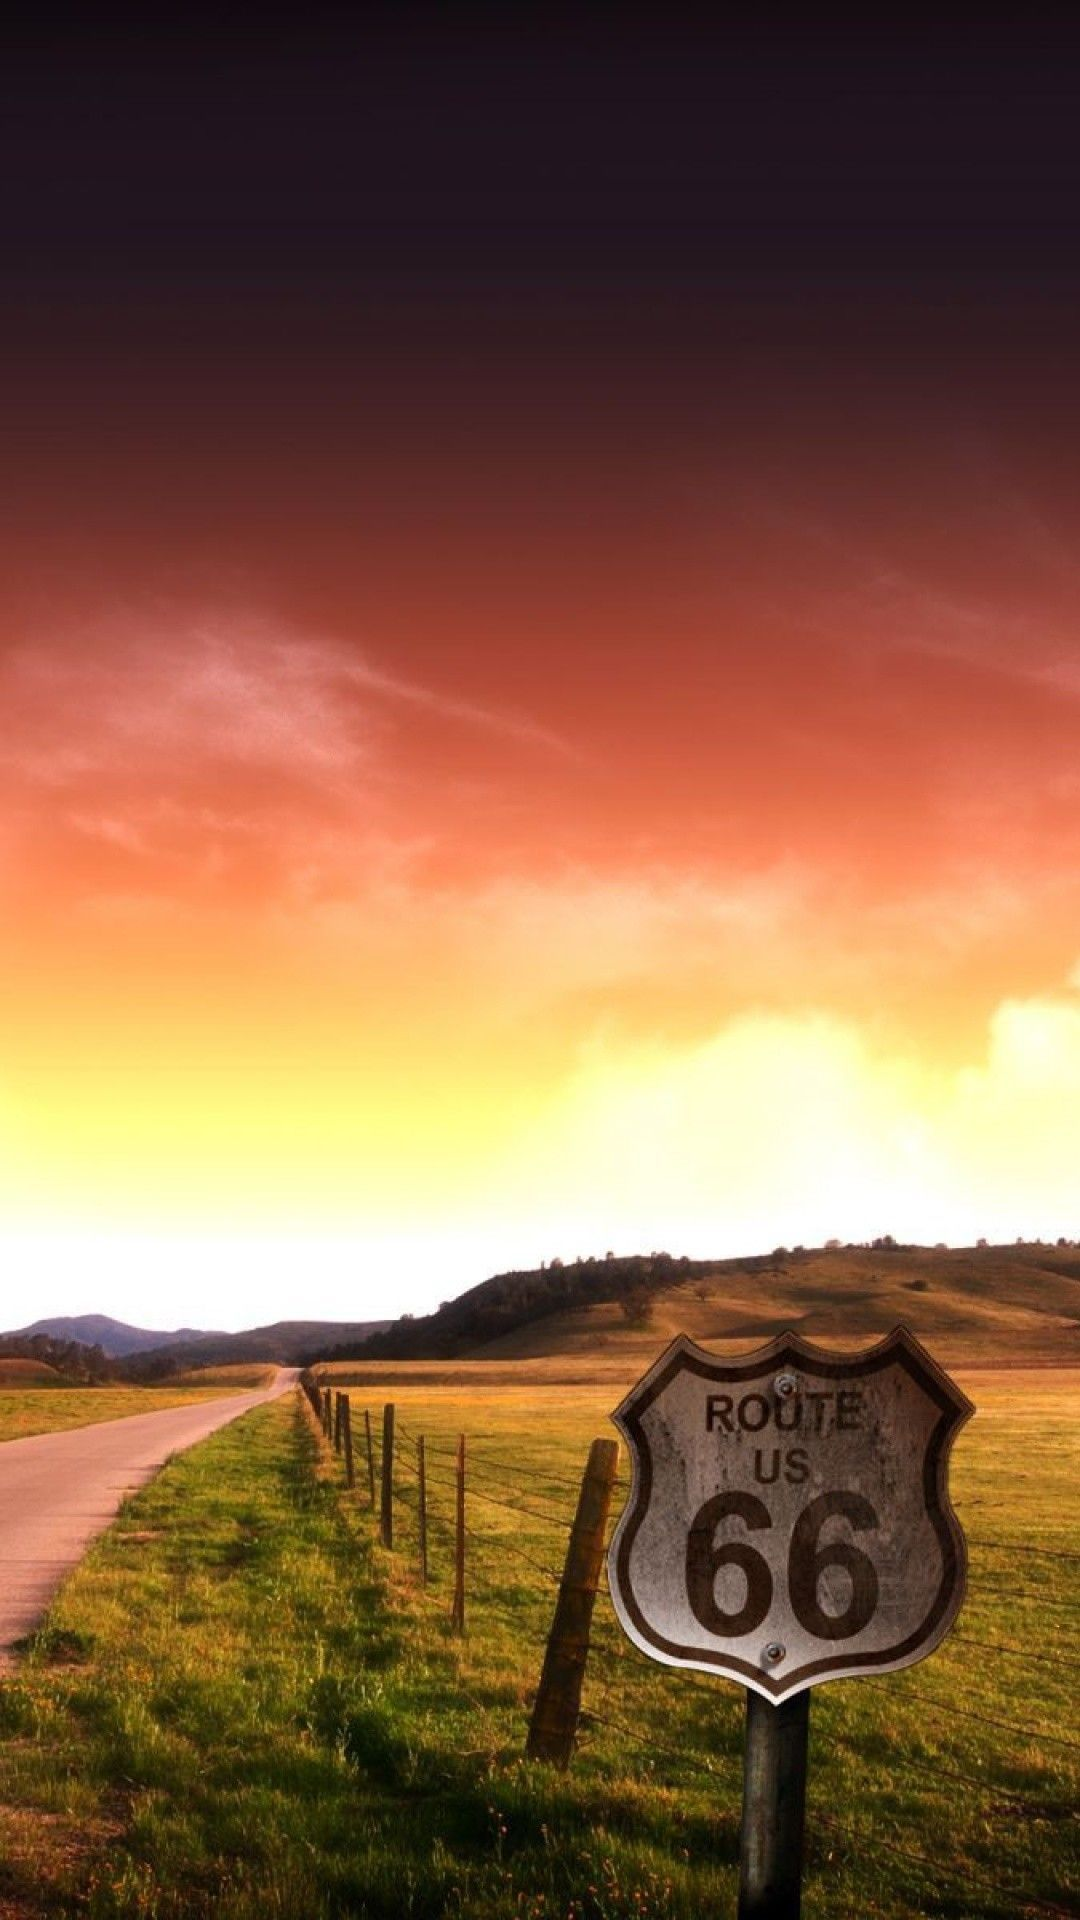 Supernatural Iphone Wallpapers Iphone X Wallpaper Route 66